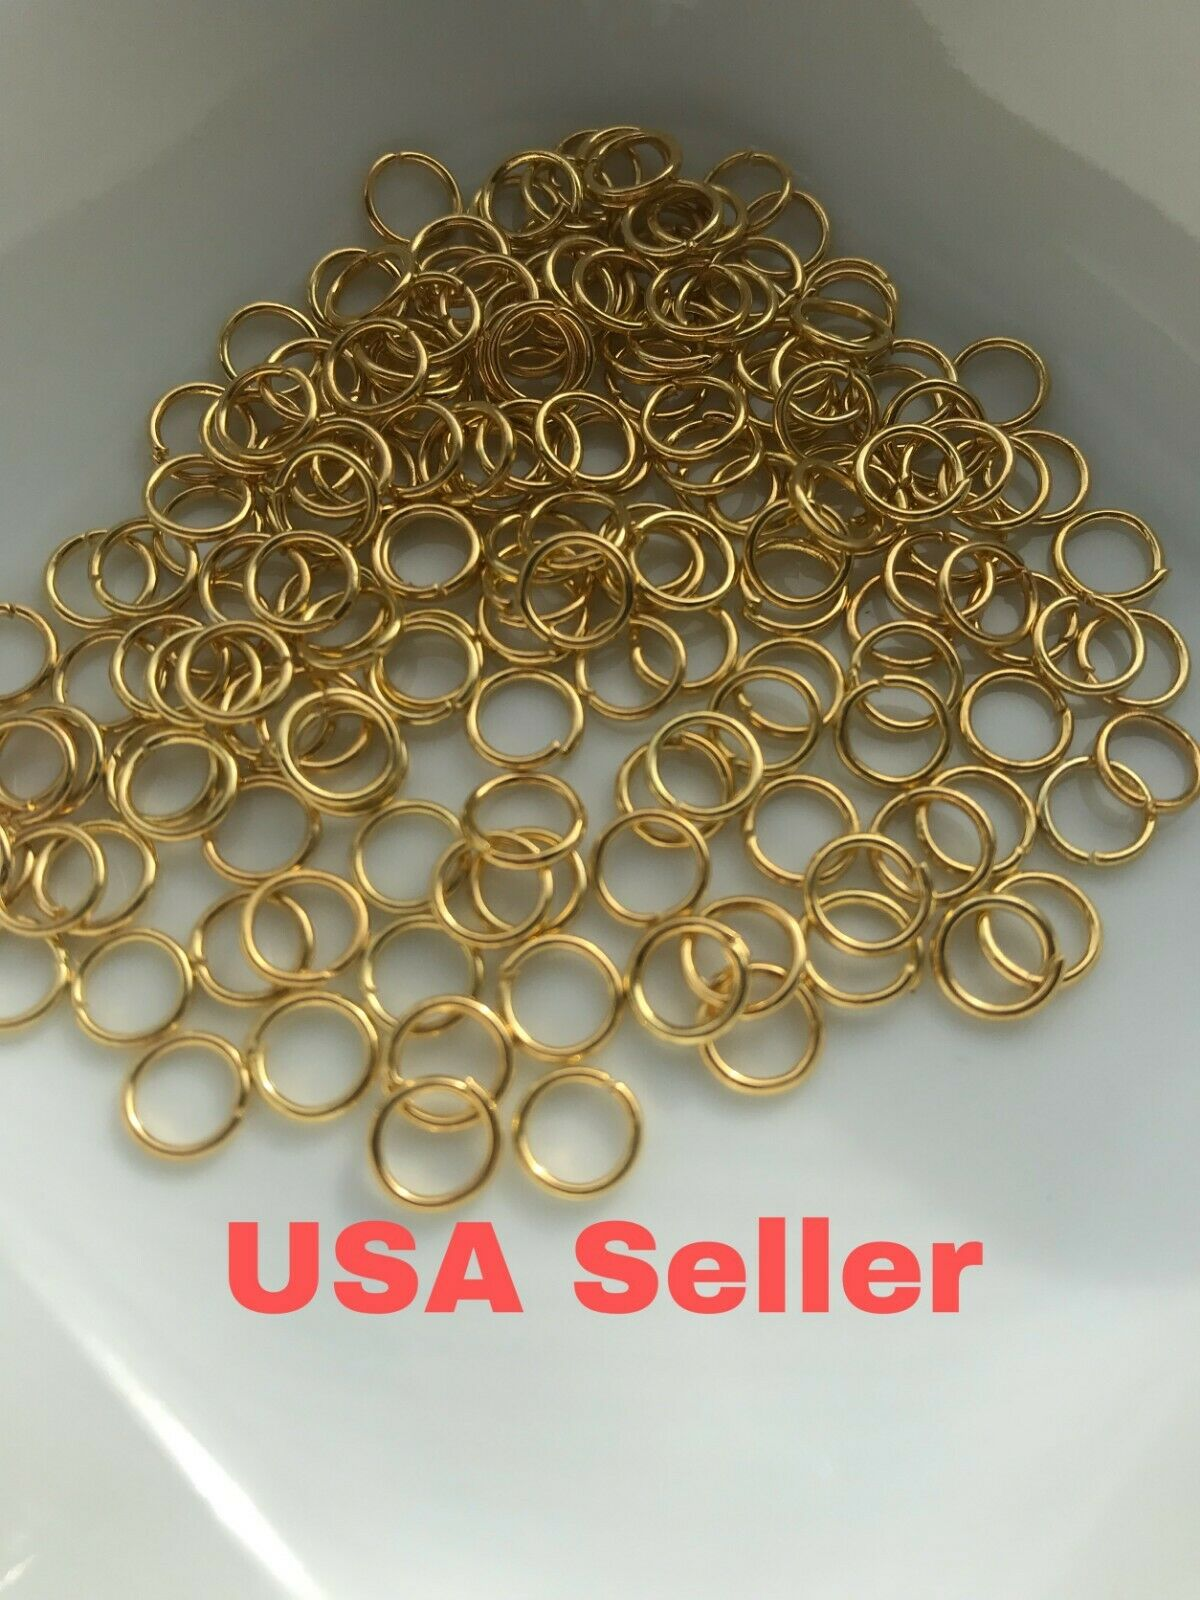 10 x 9ct White Gold 5mm Jump Rings Jewellery Making